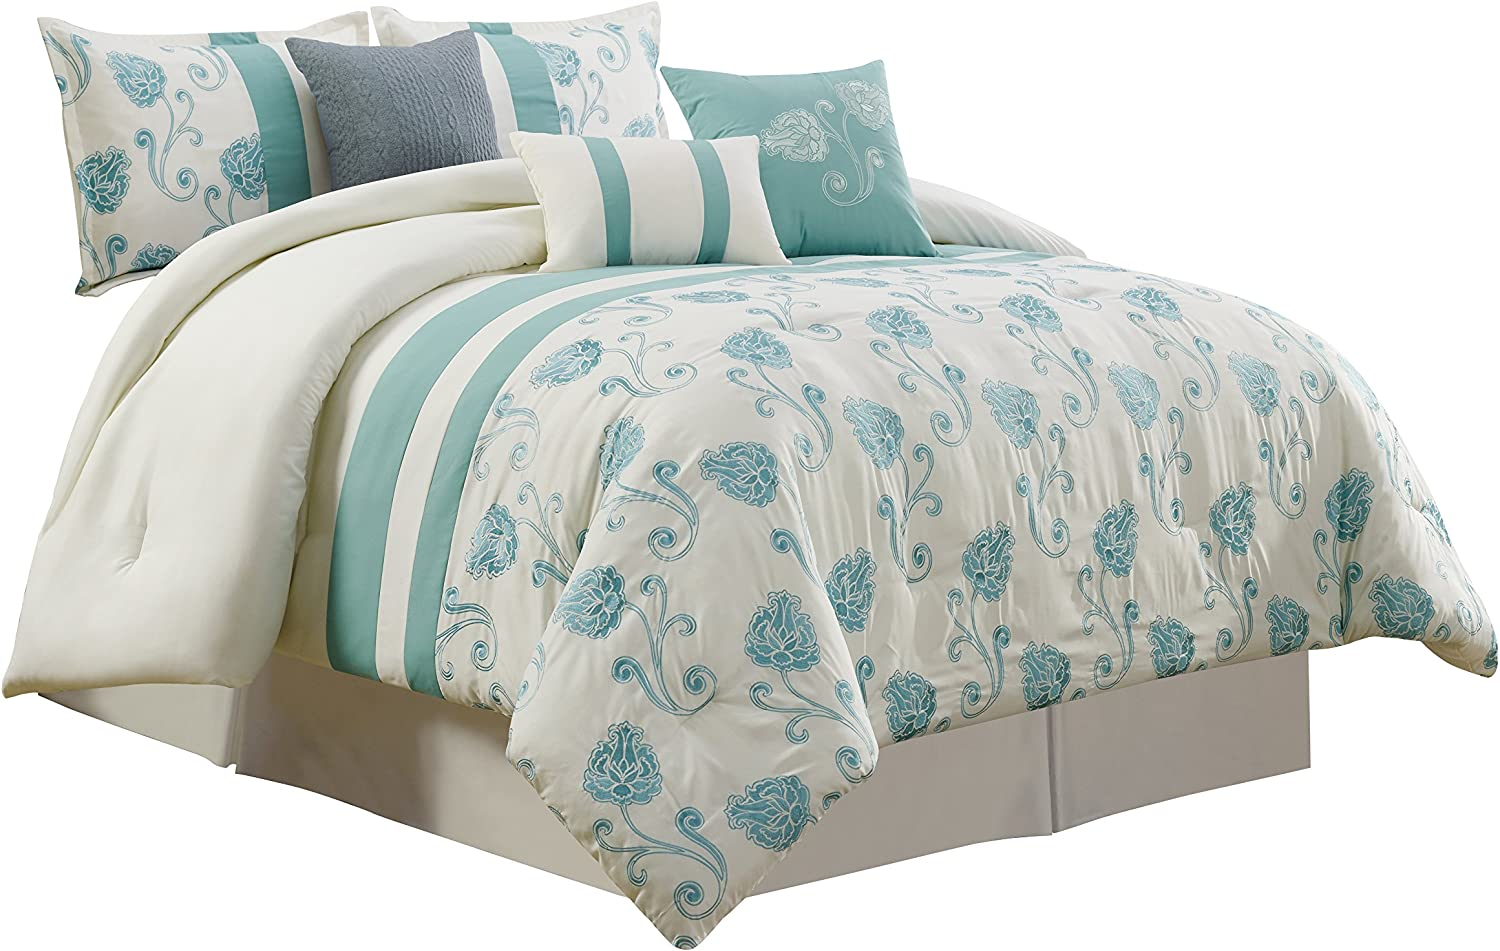 Queen Chezmoi Collection Calais 7-Piece Ivory Teal Floral Embroidered Comforter Set